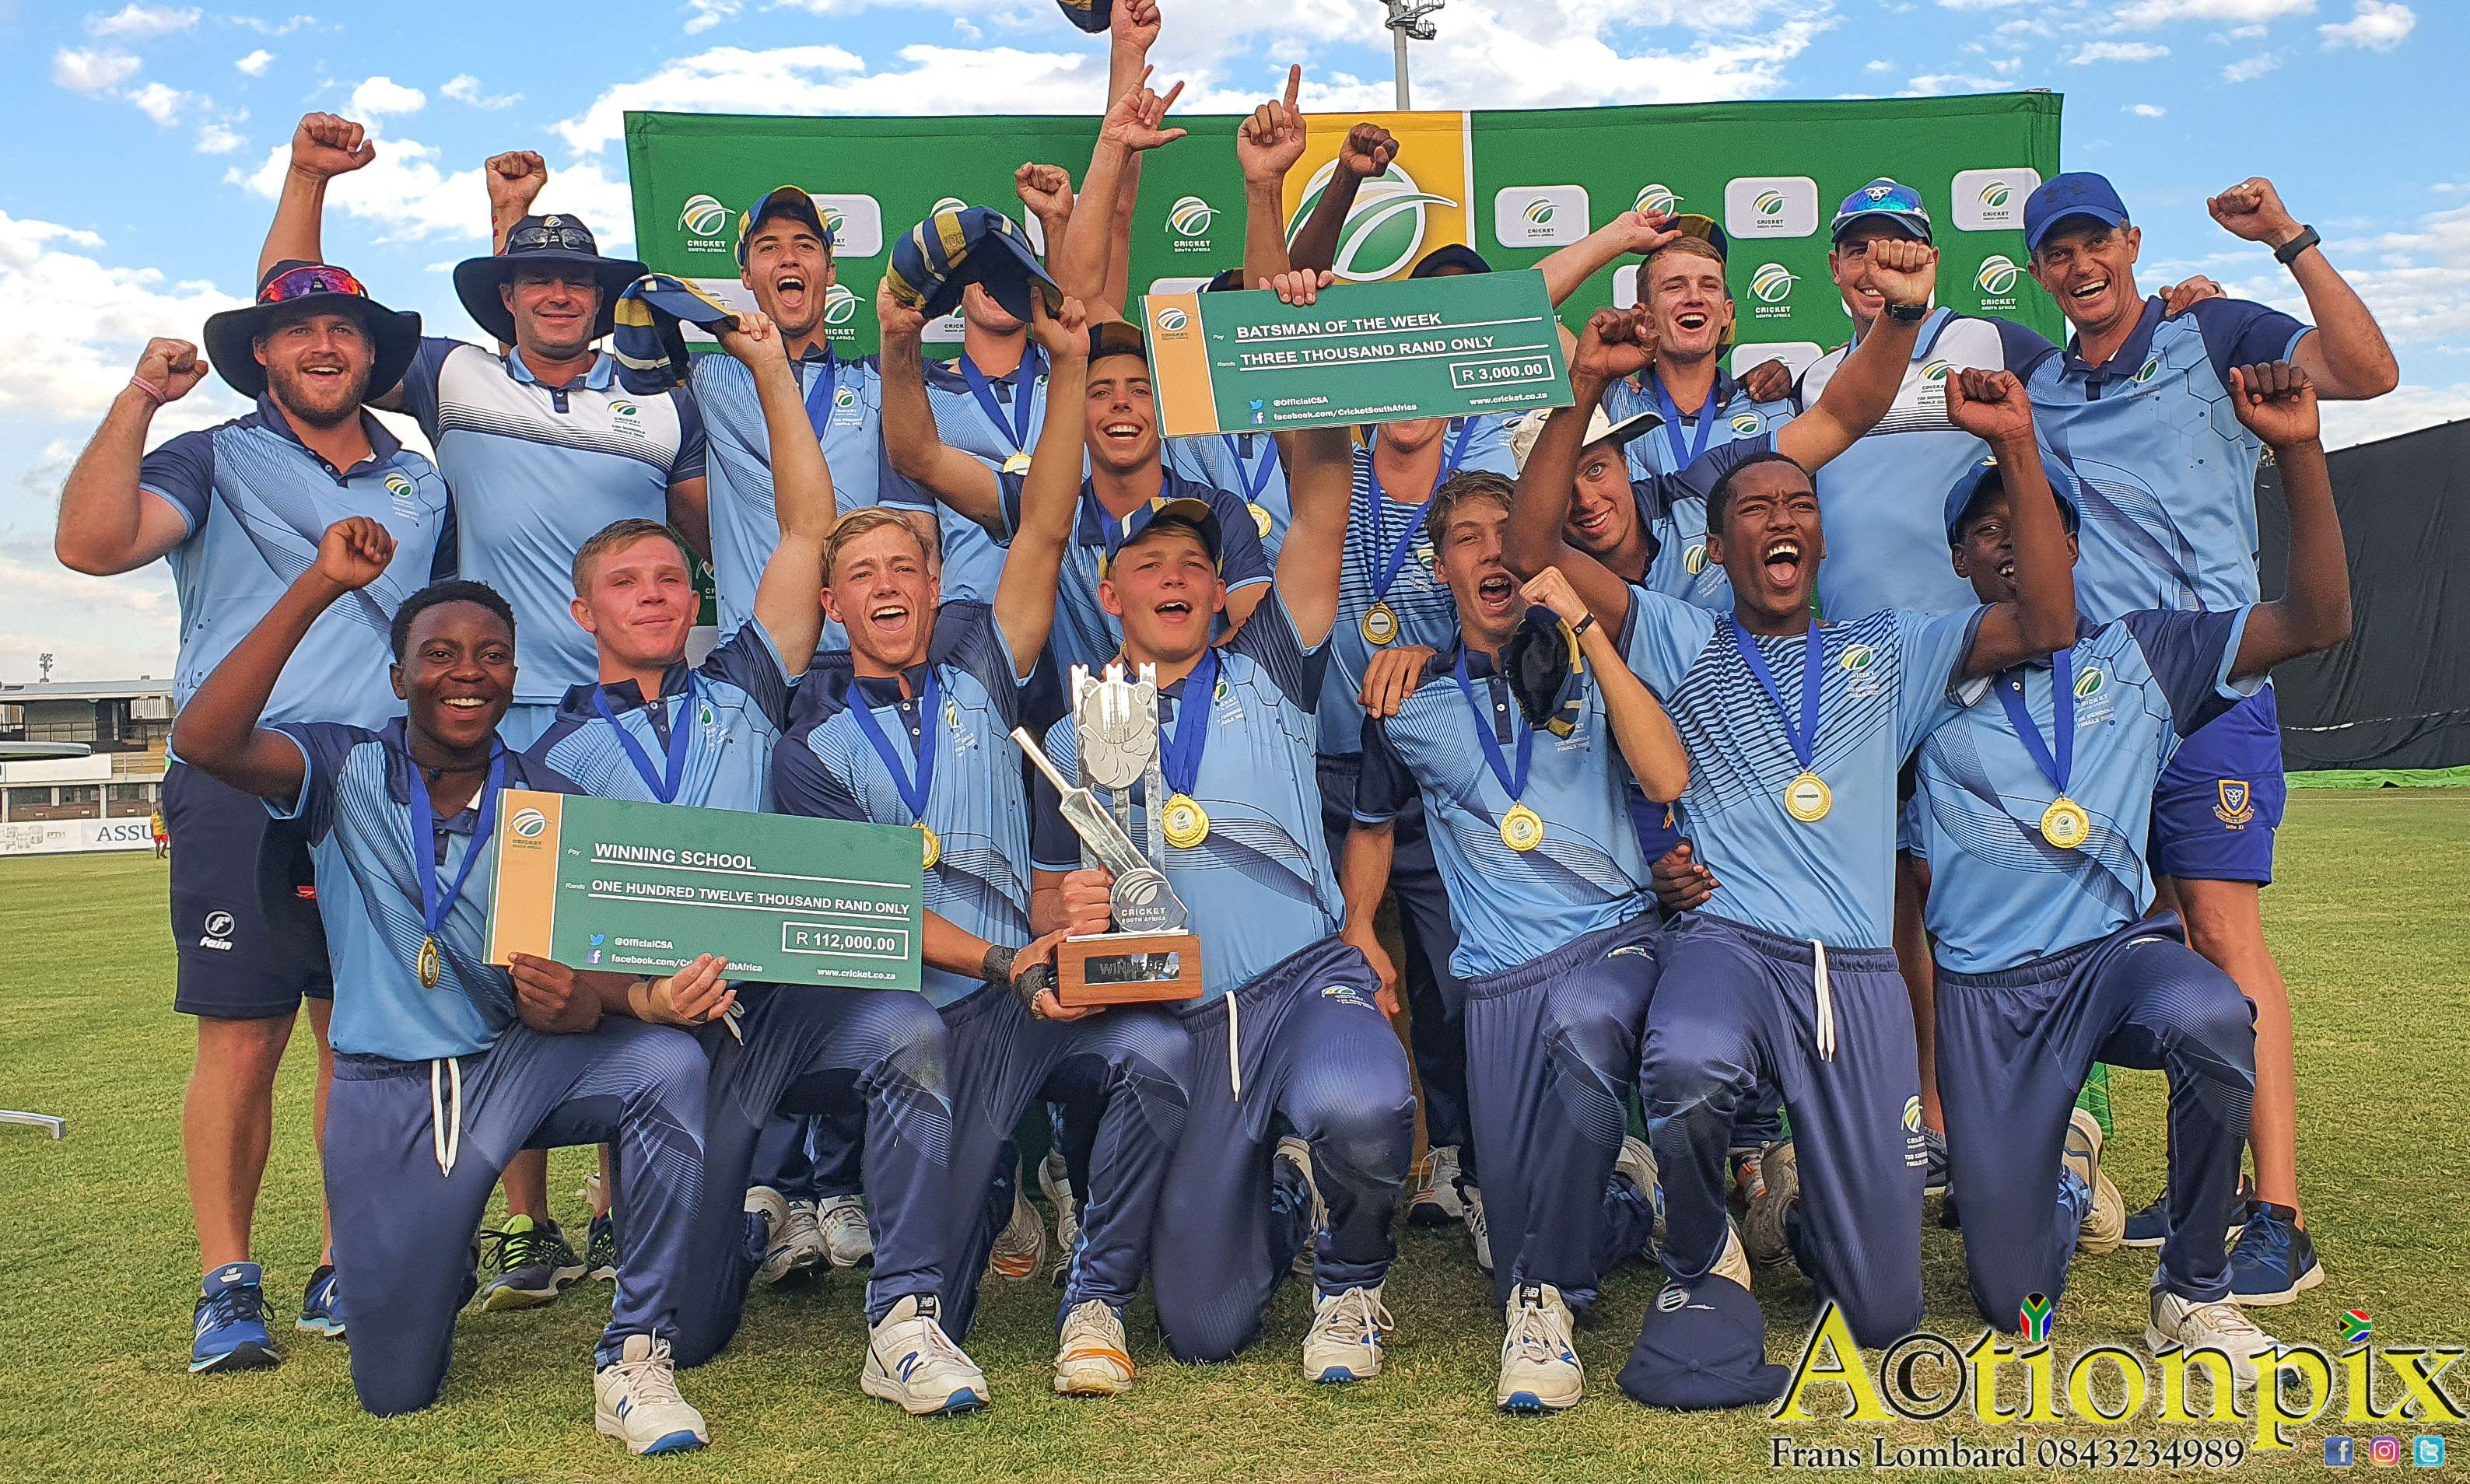 PSX_20200308_173610 School of Cricket | Waterkloof claim CSA Schools T20 Challenge title - School of Cricket